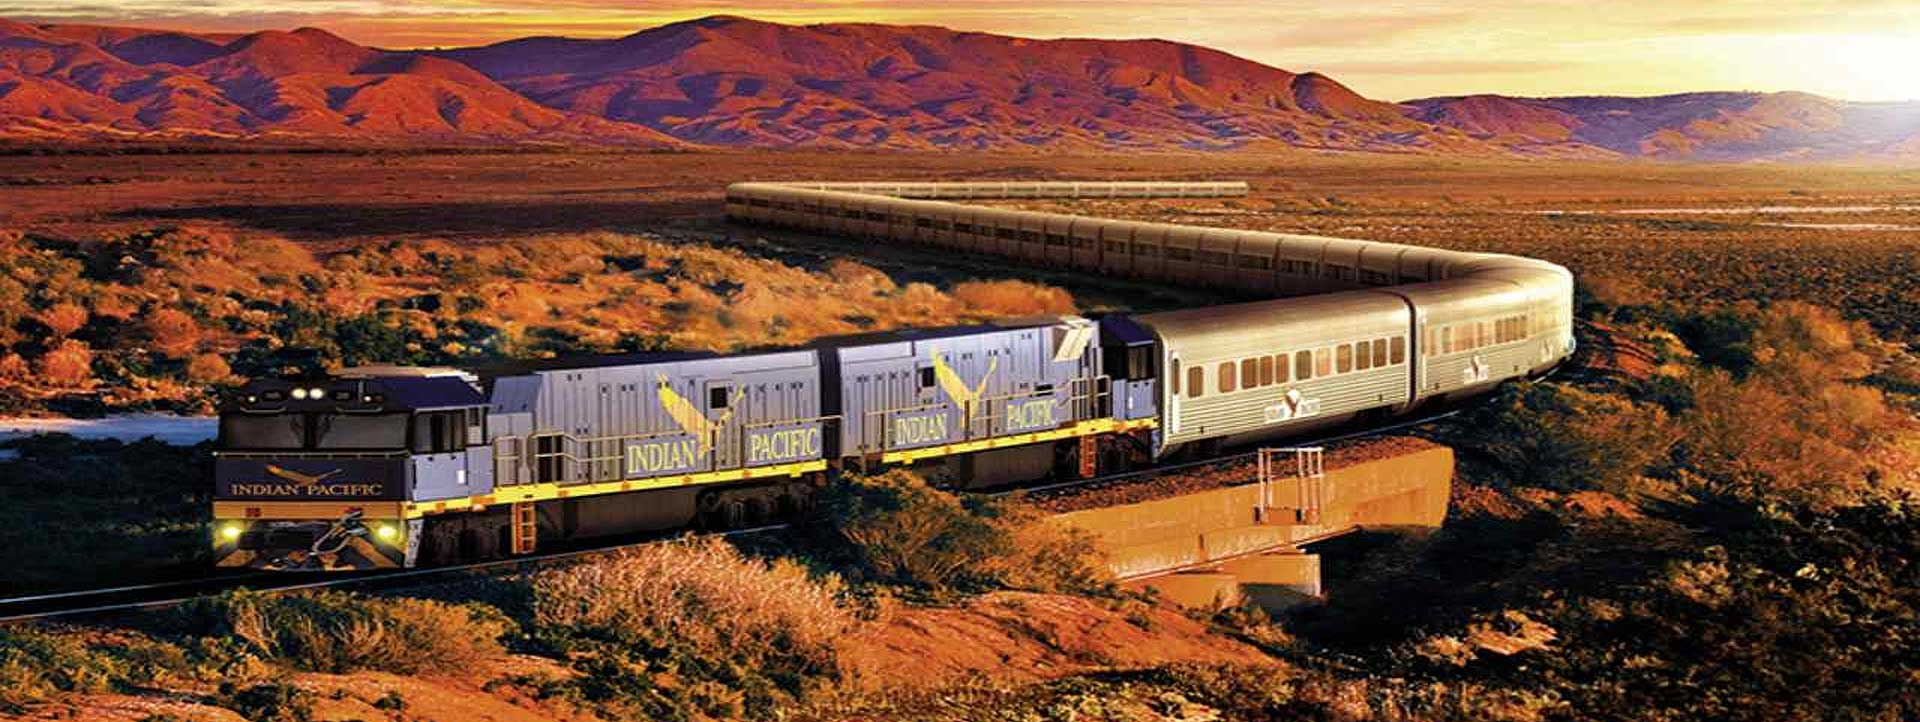 THE-INDIAN-PACIFIC-RAIL-slider-image